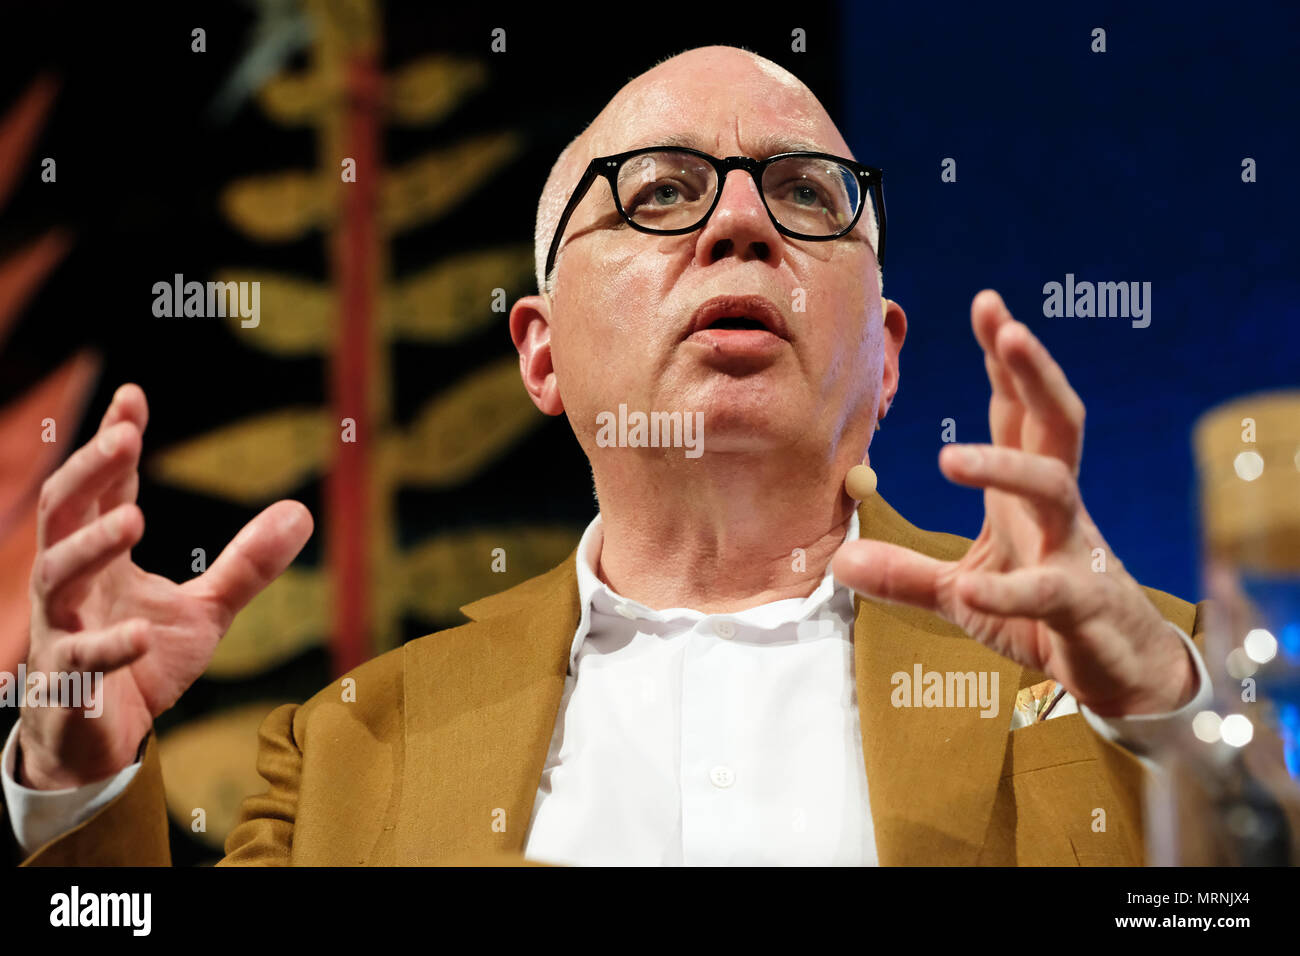 Hay Festival, Hay on Wye, UK - May 2018 - Michael Wolff the journalist and author on stage at the Hay Festival talking about his book Fire and Fury  - Inside the Trump White House - Photo Steven May / Alamy Live News - Stock Image